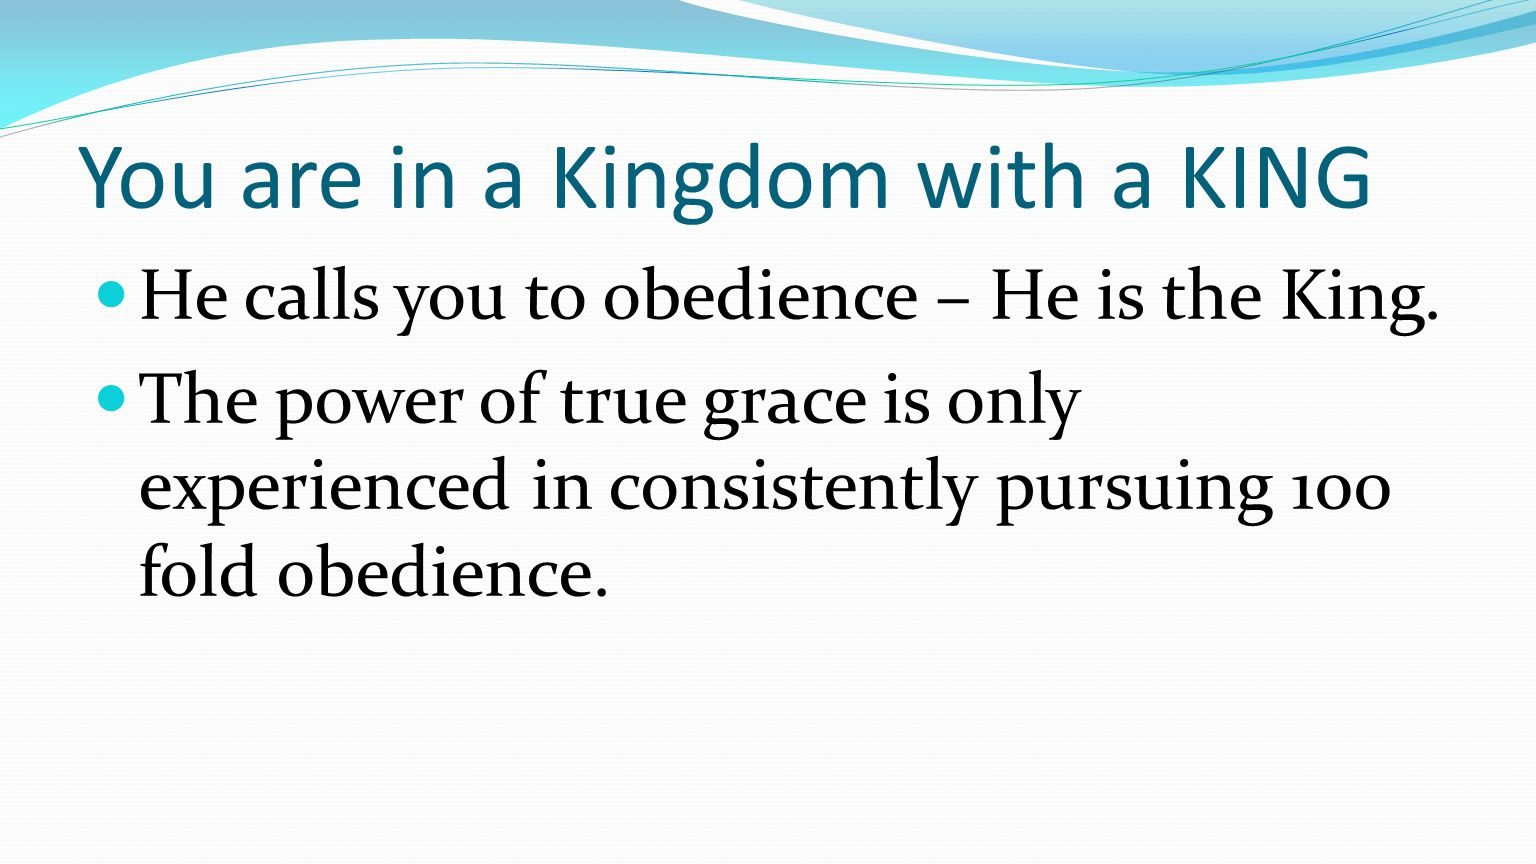 You are in a Kingdom with a KING He calls you to obedience – He is the King.